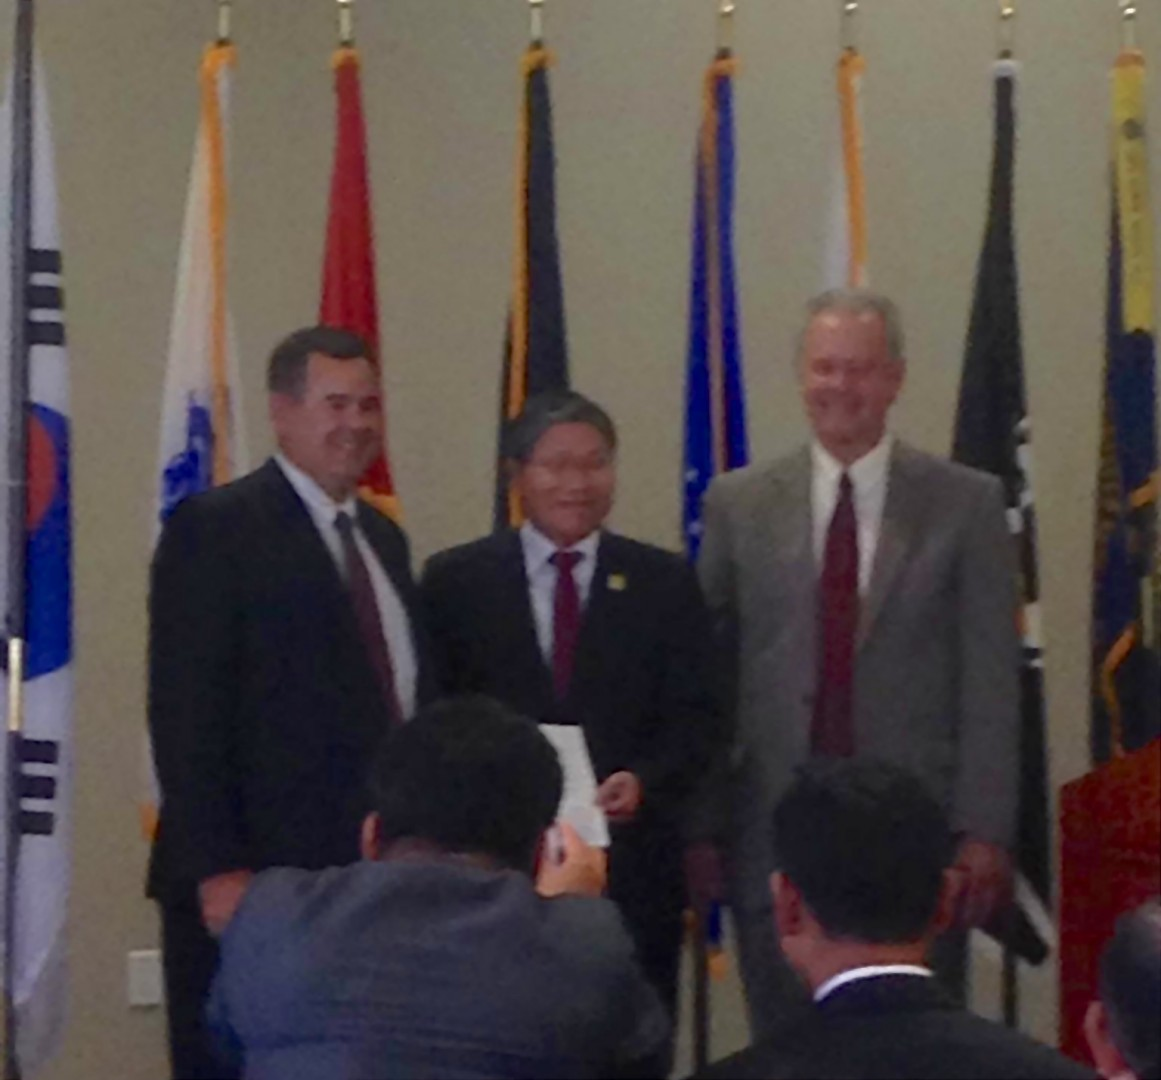 L-R: City of St. George Mayor Jon Pike, Republic of Korea Consul General Dongman Han and Ivins City Mayor Chris Hart display a proclamation recognizing Korean Veteran Day, Ivins, Utah, Oct. 17, 2014 | Photo by Holly Coombs, St. George News